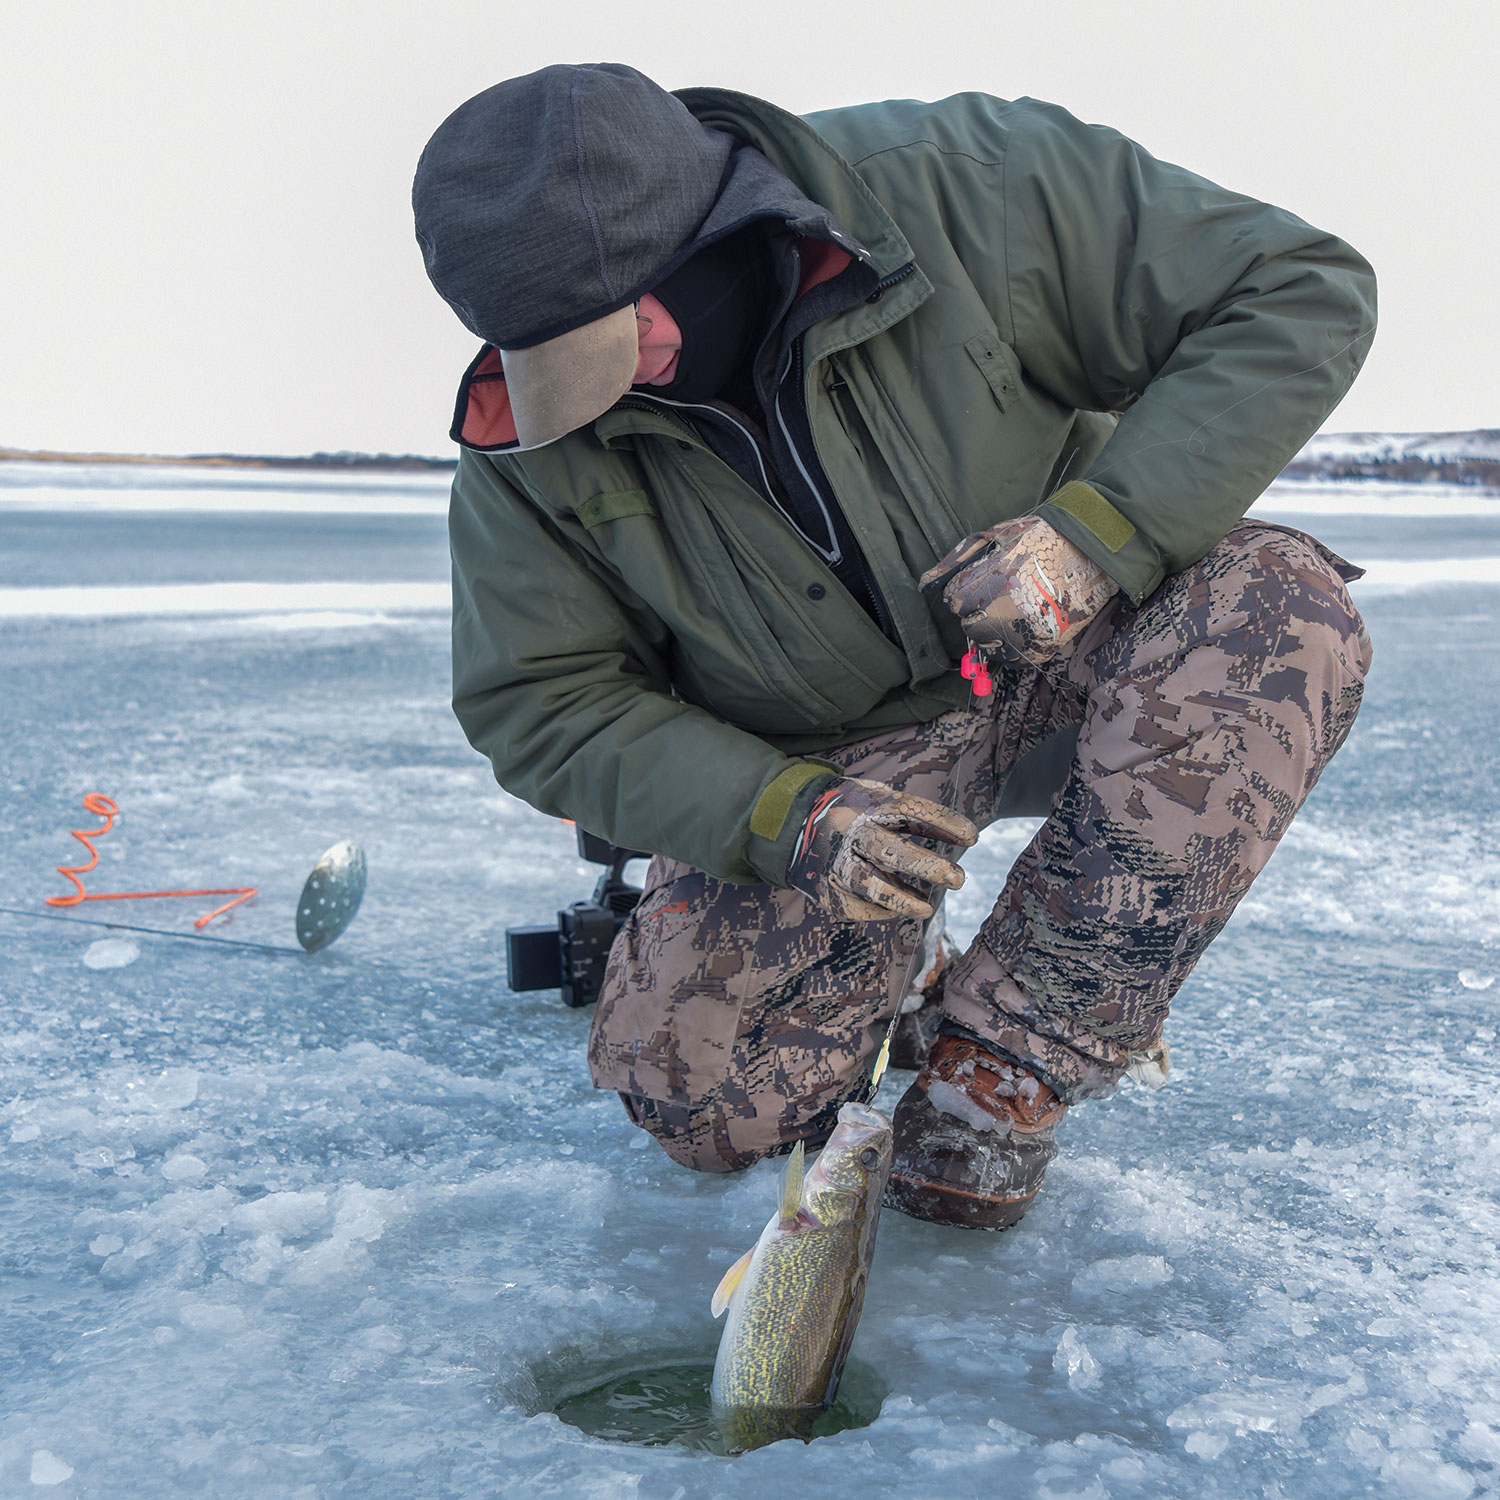 Angler pulling fish out of ice hole